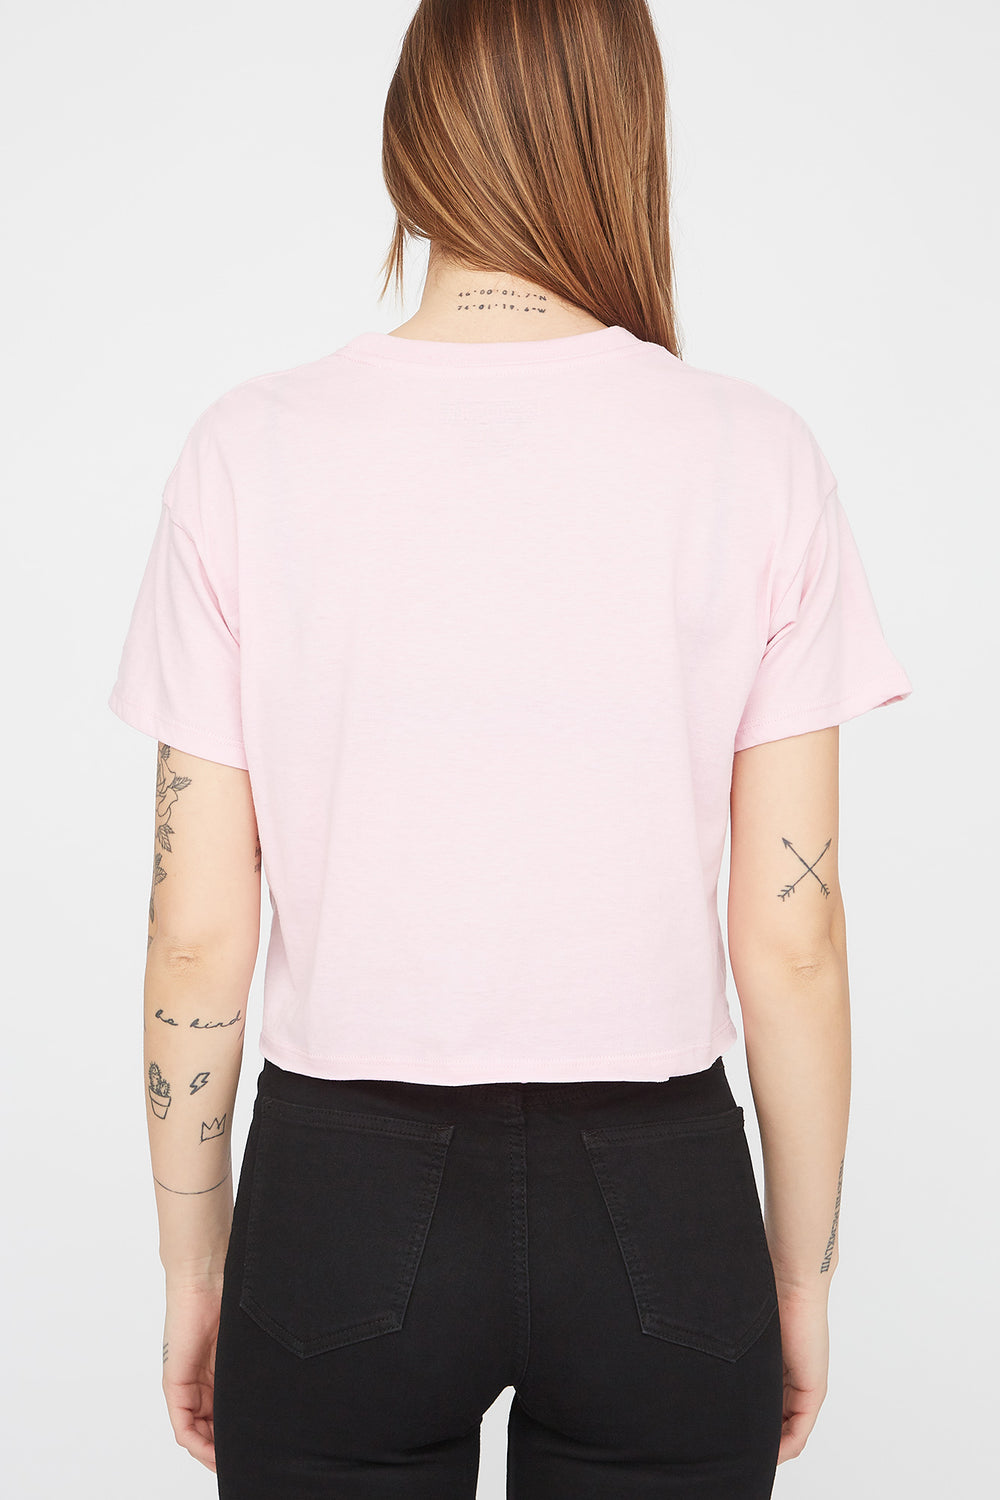 T-Shirt Court Unbreakable Zoo York Femme Rose pale